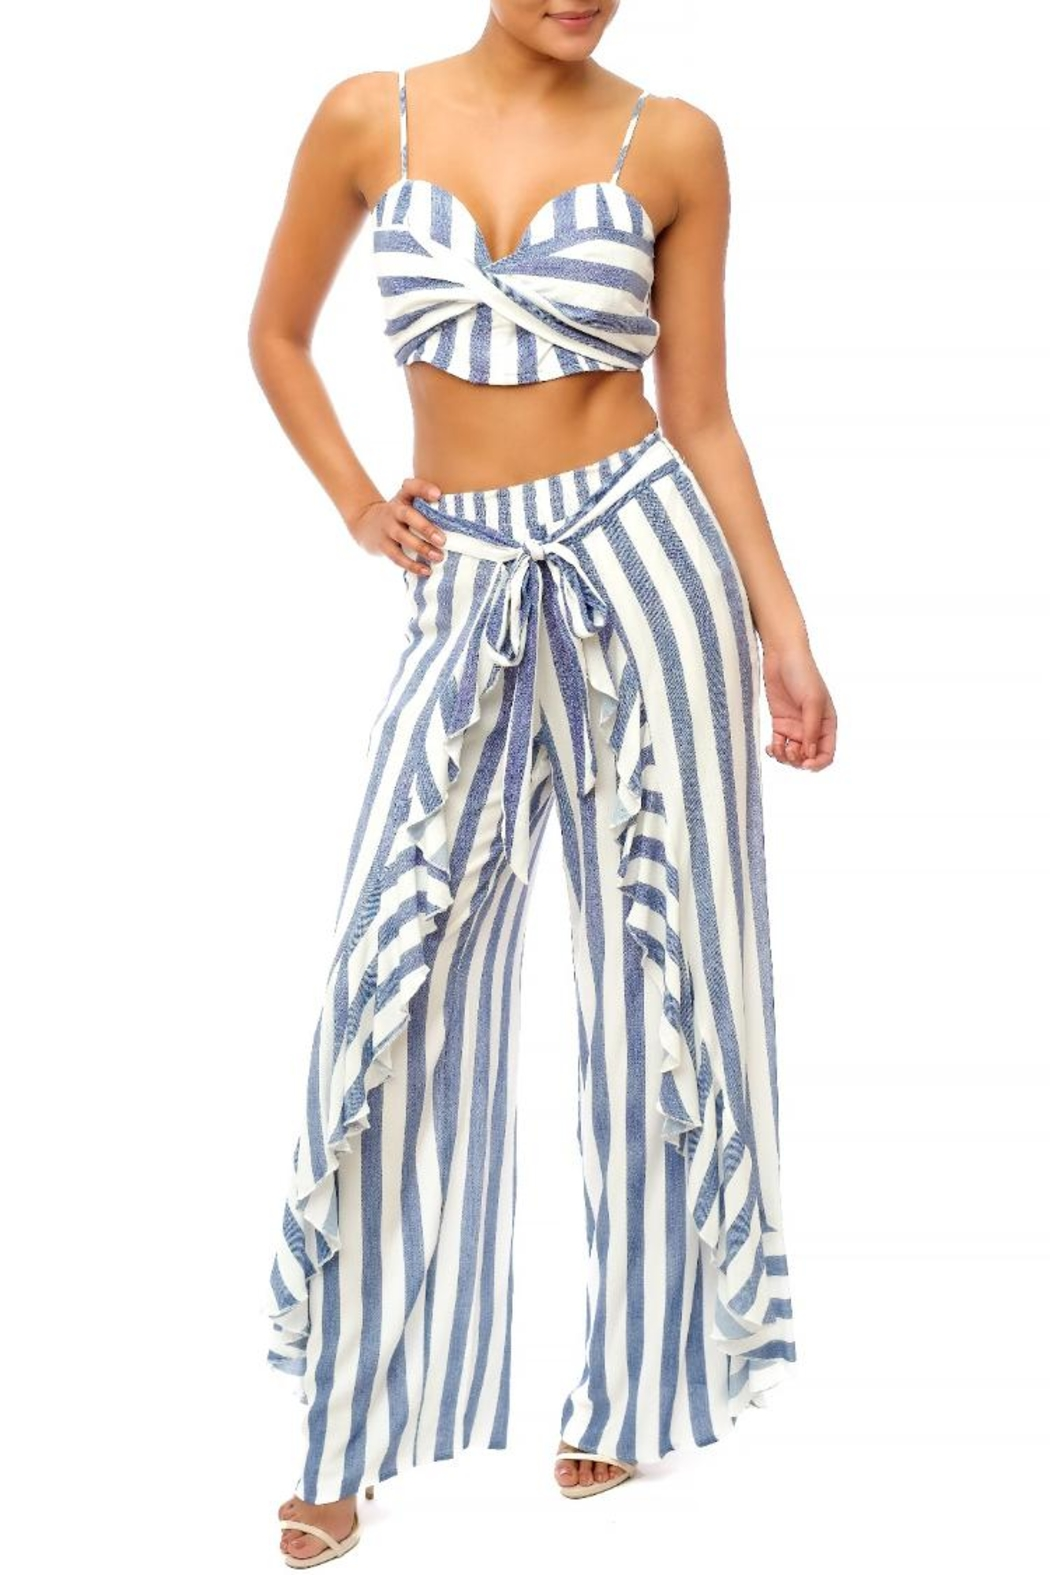 luxxel Stripe Ruffle Pant-Set - Front Cropped Image